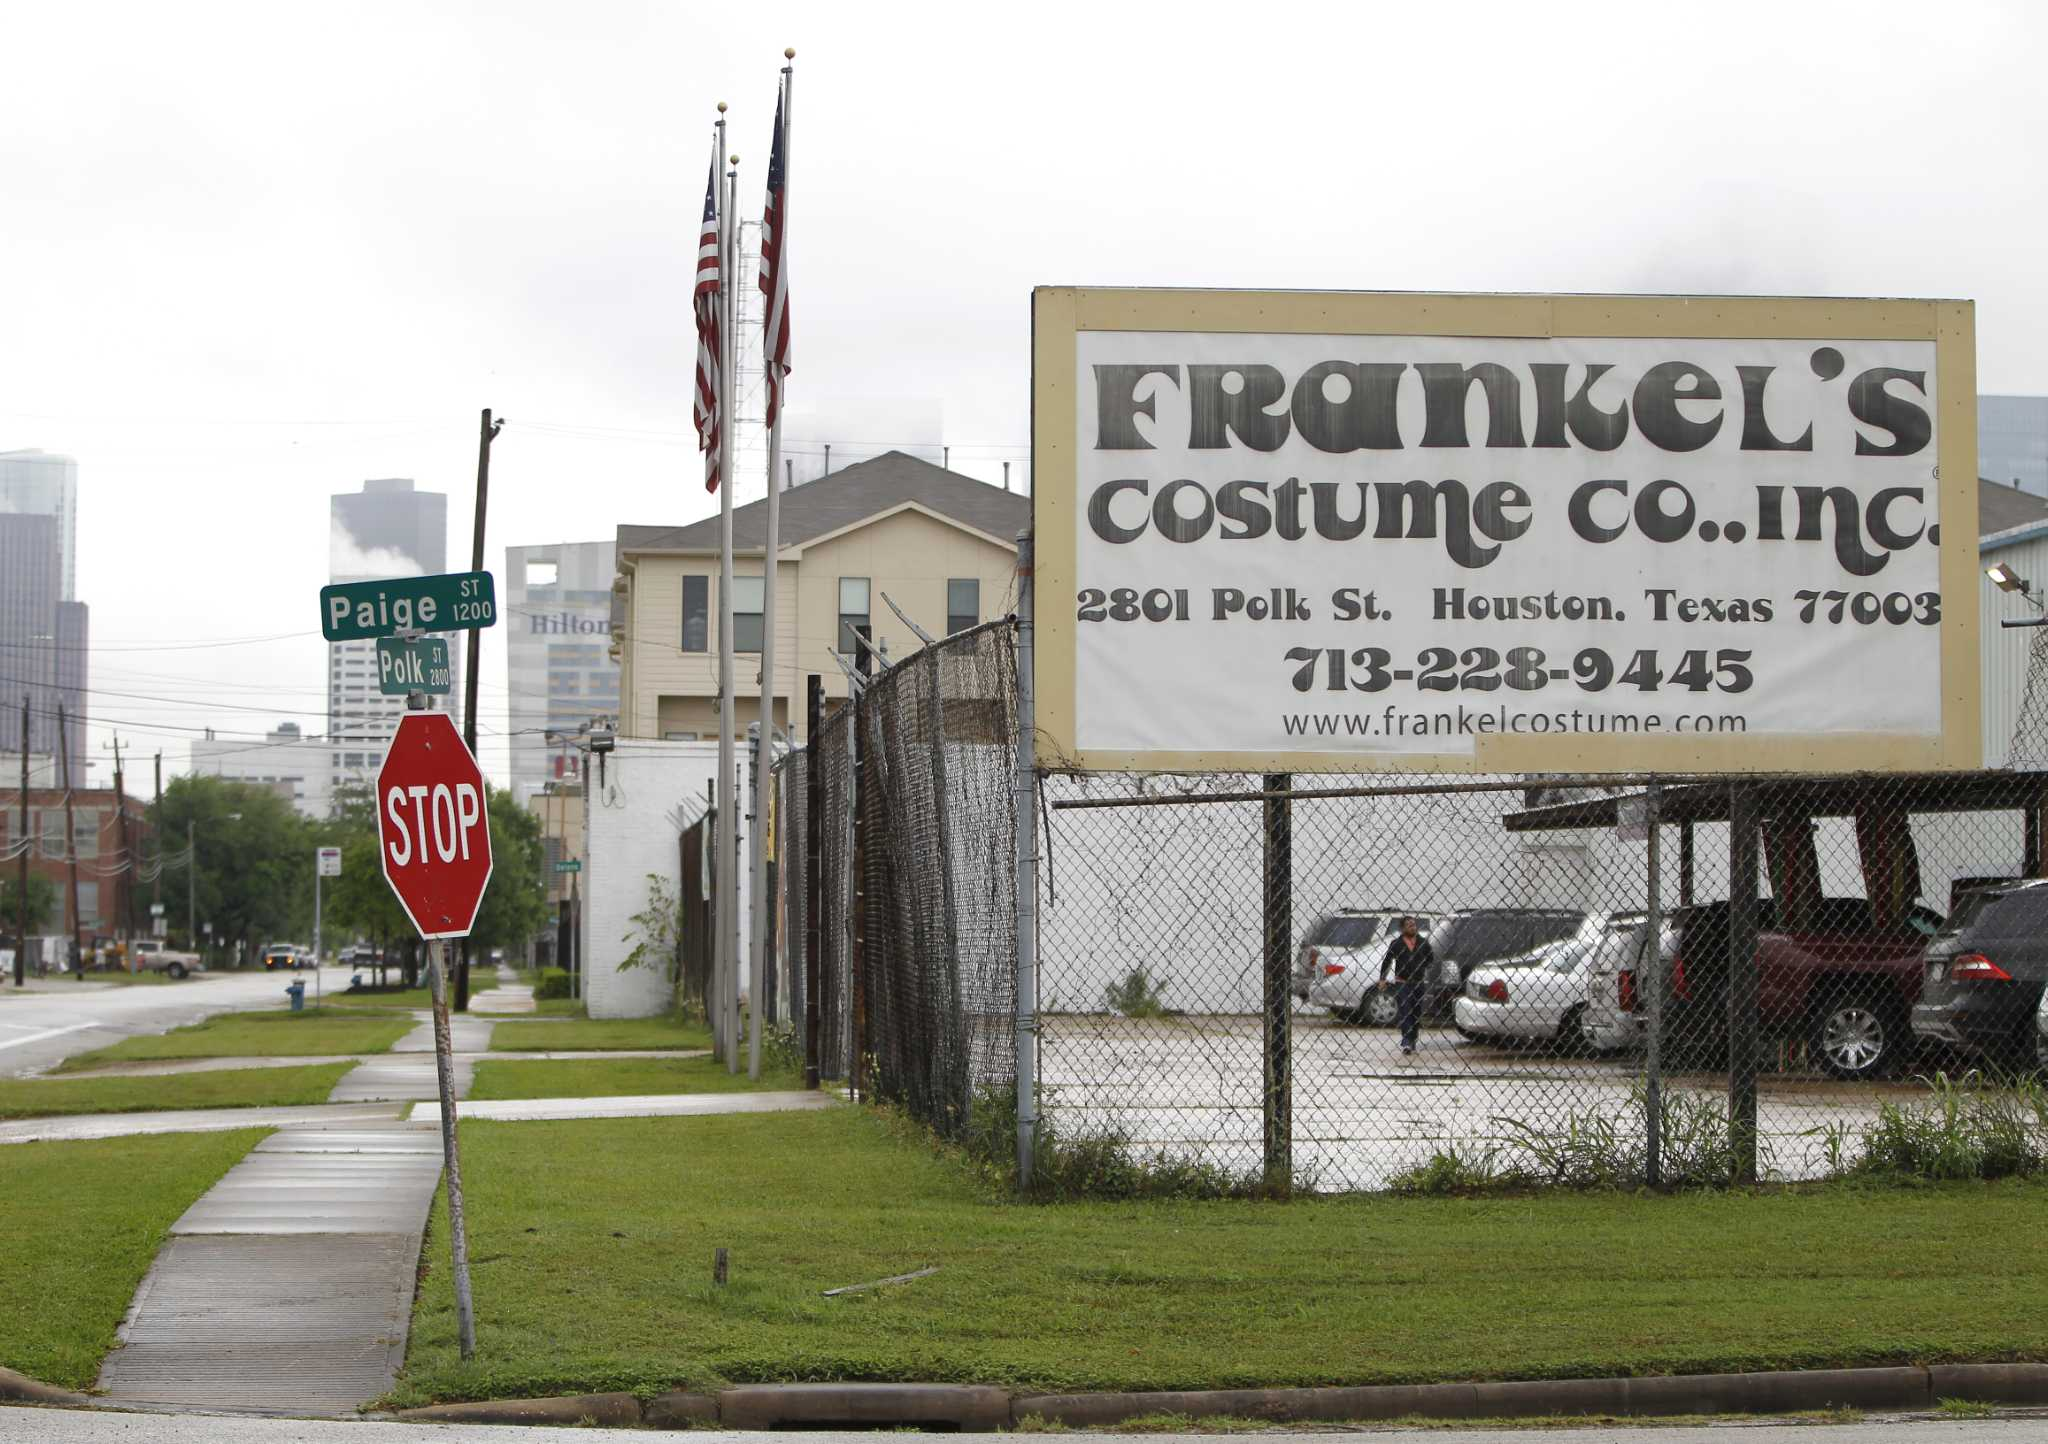 this will be the last halloween for houston's frankel's costume